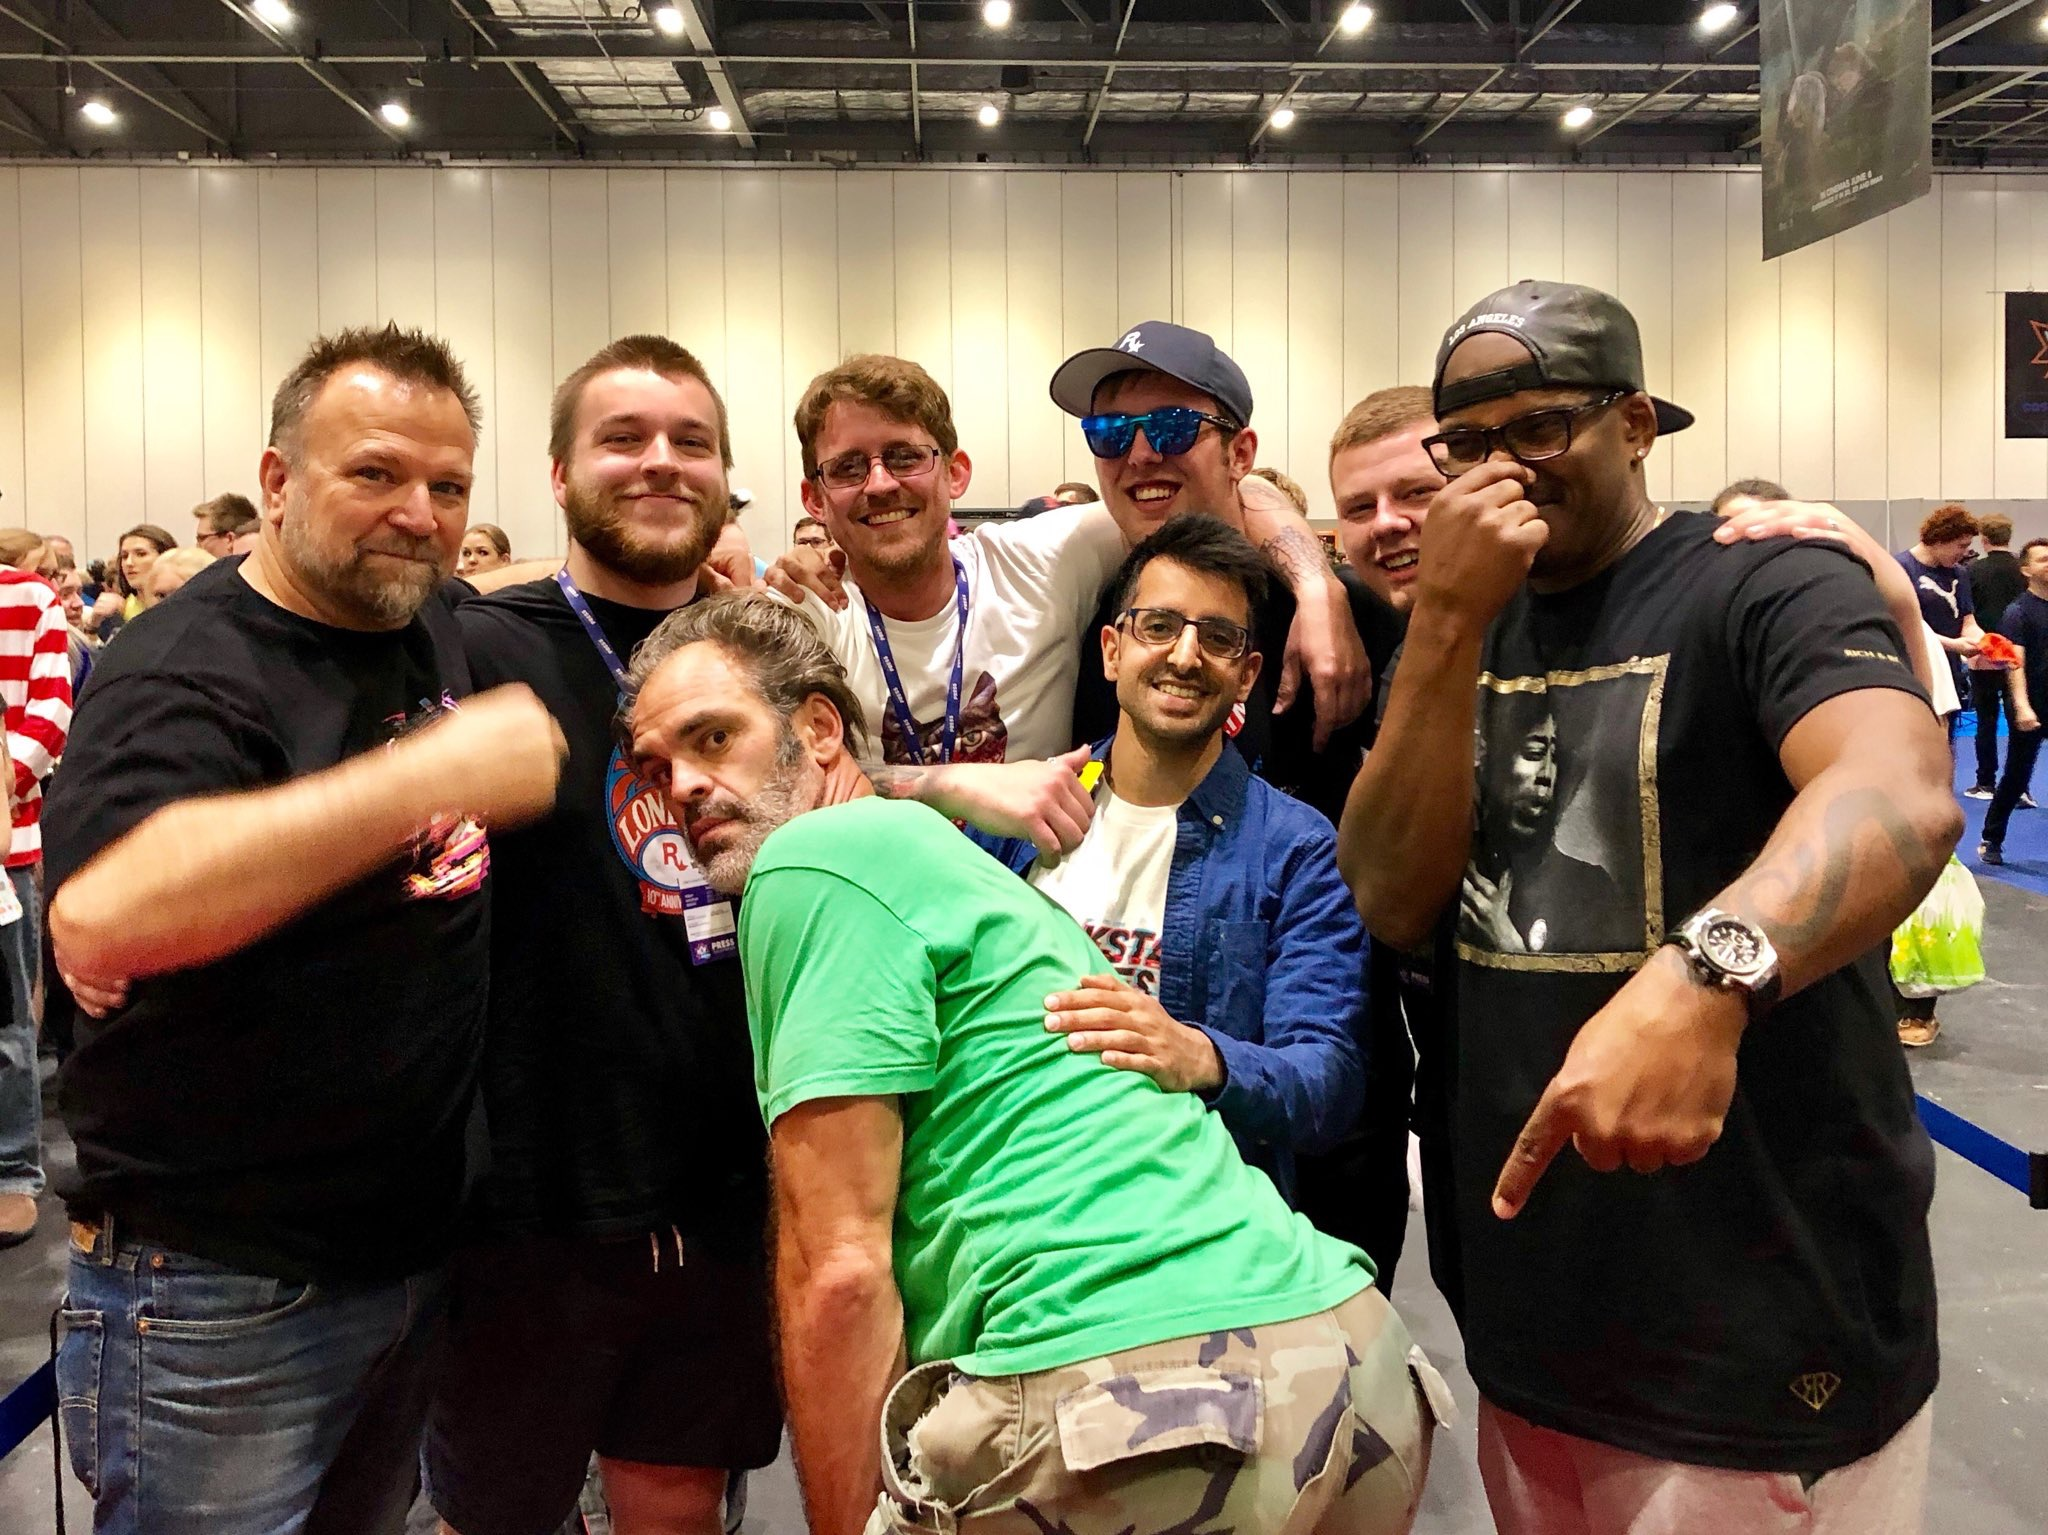 Comic Con London, meeting the GTAV characters and more